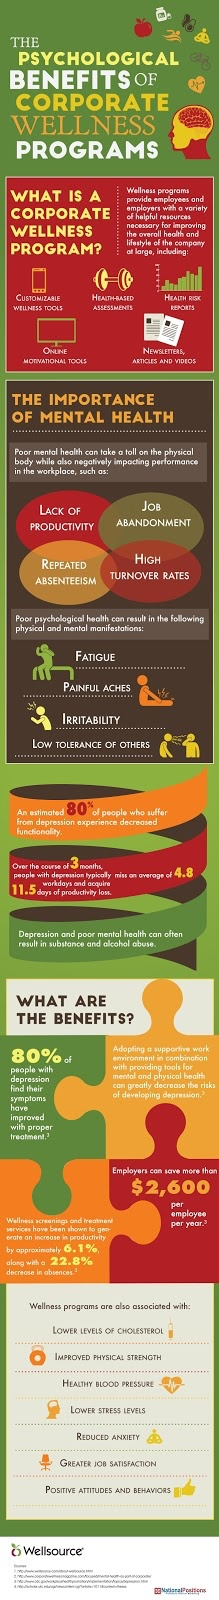 Corporate Wellness Infographic